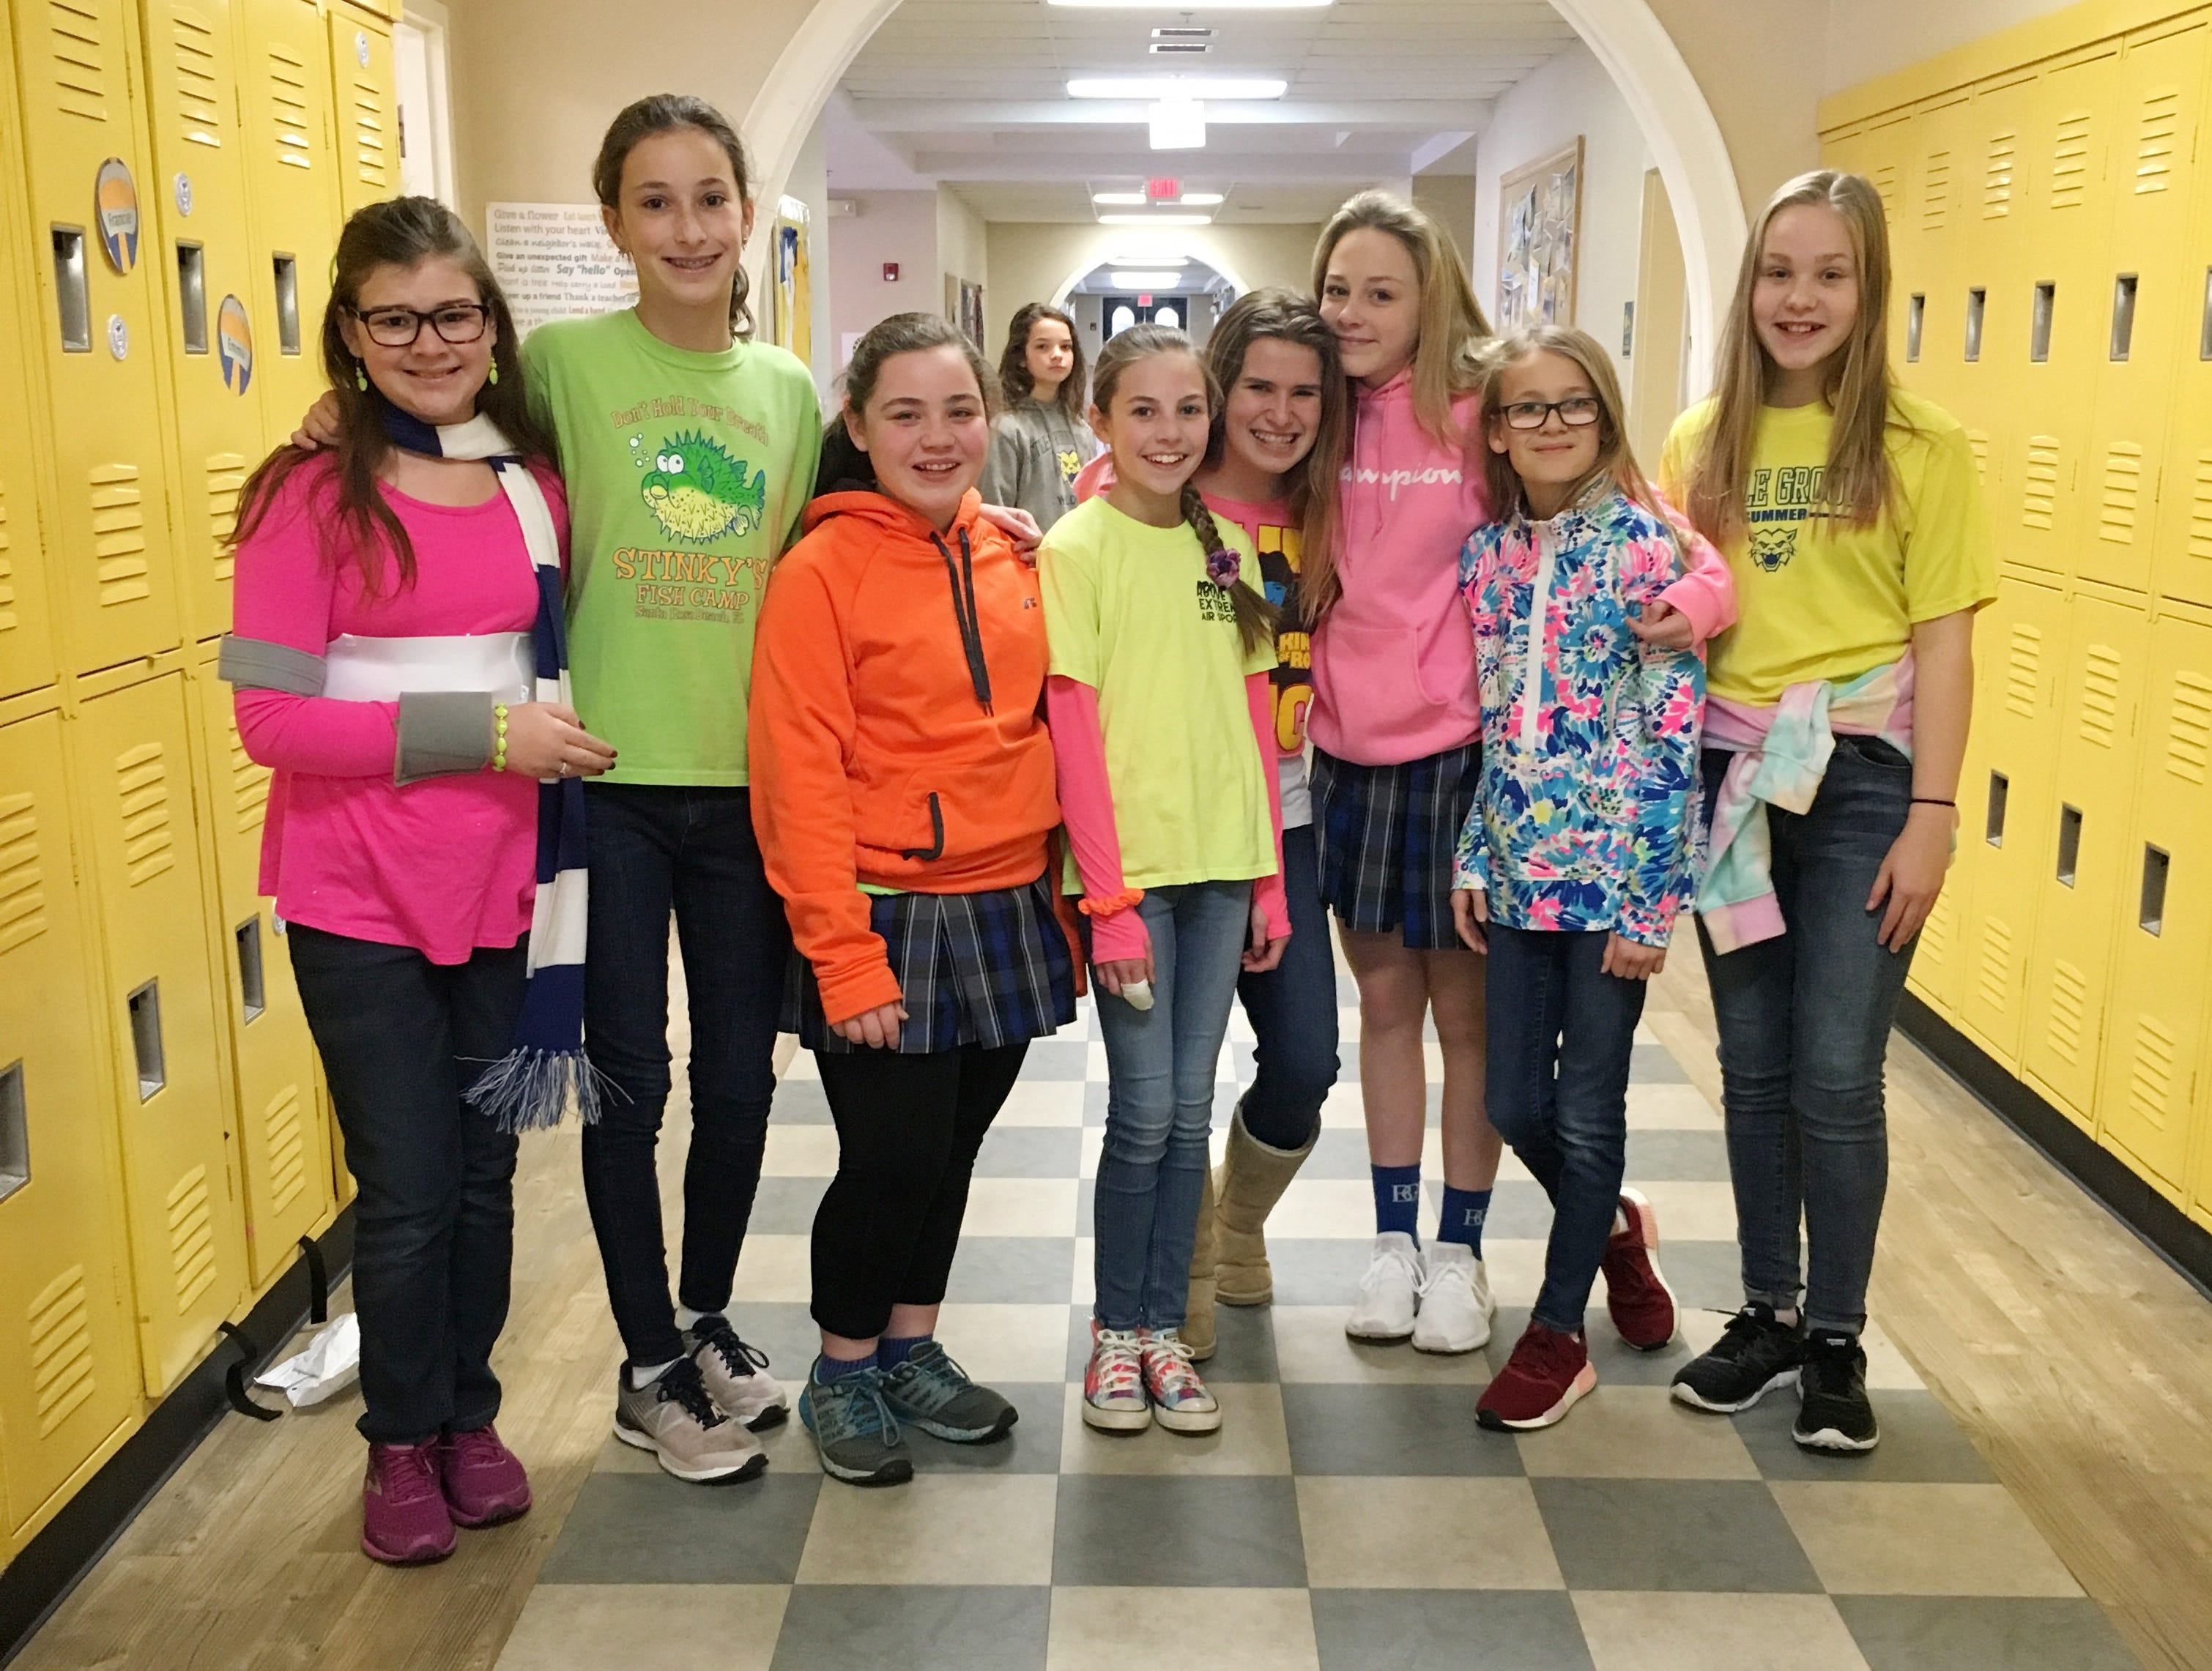 """""""Emma's Dollar Dress Down Days for the DRIVE (the Ms. Cheap Penny Drive, that is!)""""  - COLLECTED: $717.35. Proposed by Emma Kramer, who is in center in neon yellow shirt and pink sleeves on """"Nickels for Neon"""" day. Left to right...Maclaine Moore, Phoebe Lott, Evey Knopf, Emma Kramer, Isabella Besco, Caroline Pratt, Abby Binkley, and Mac Flowers."""